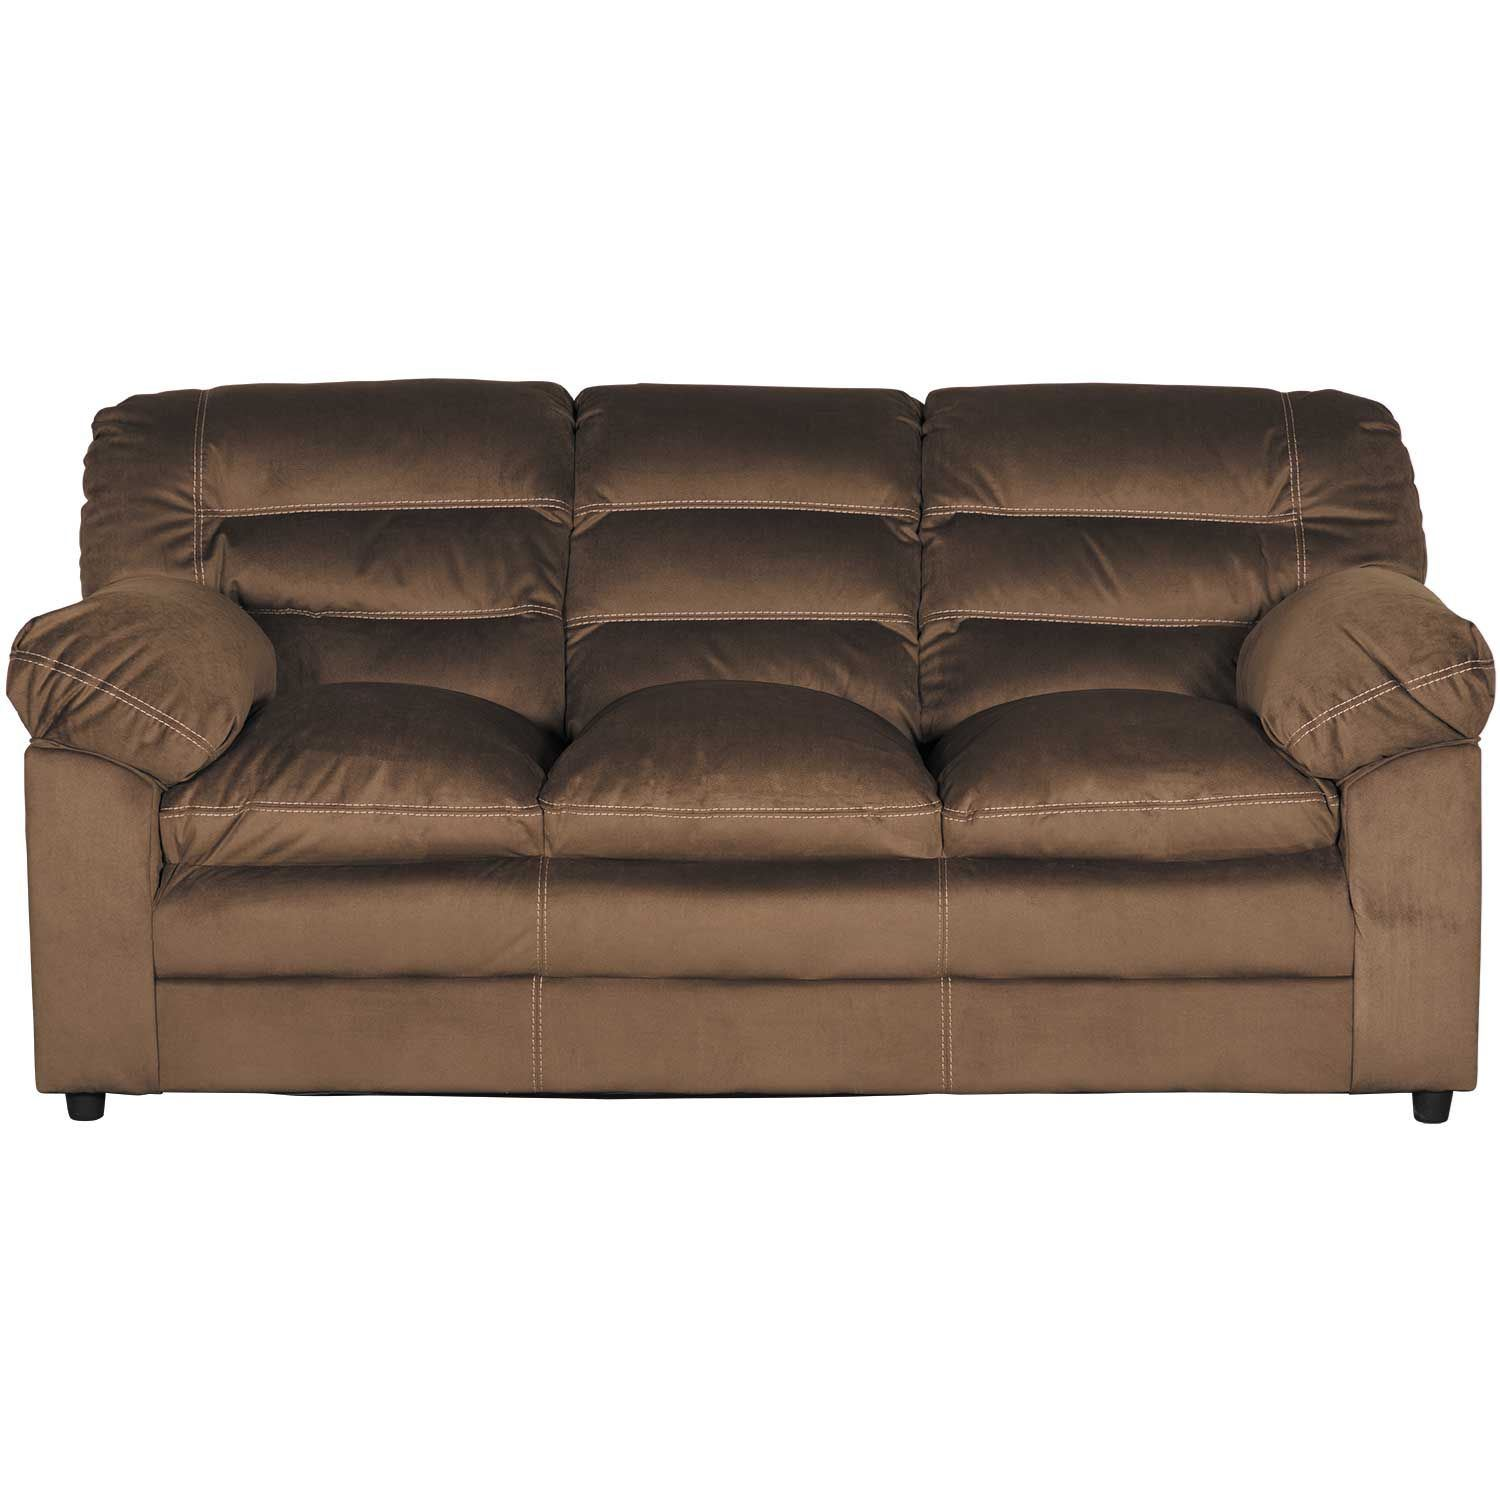 Gosnell Chocolate Sofa